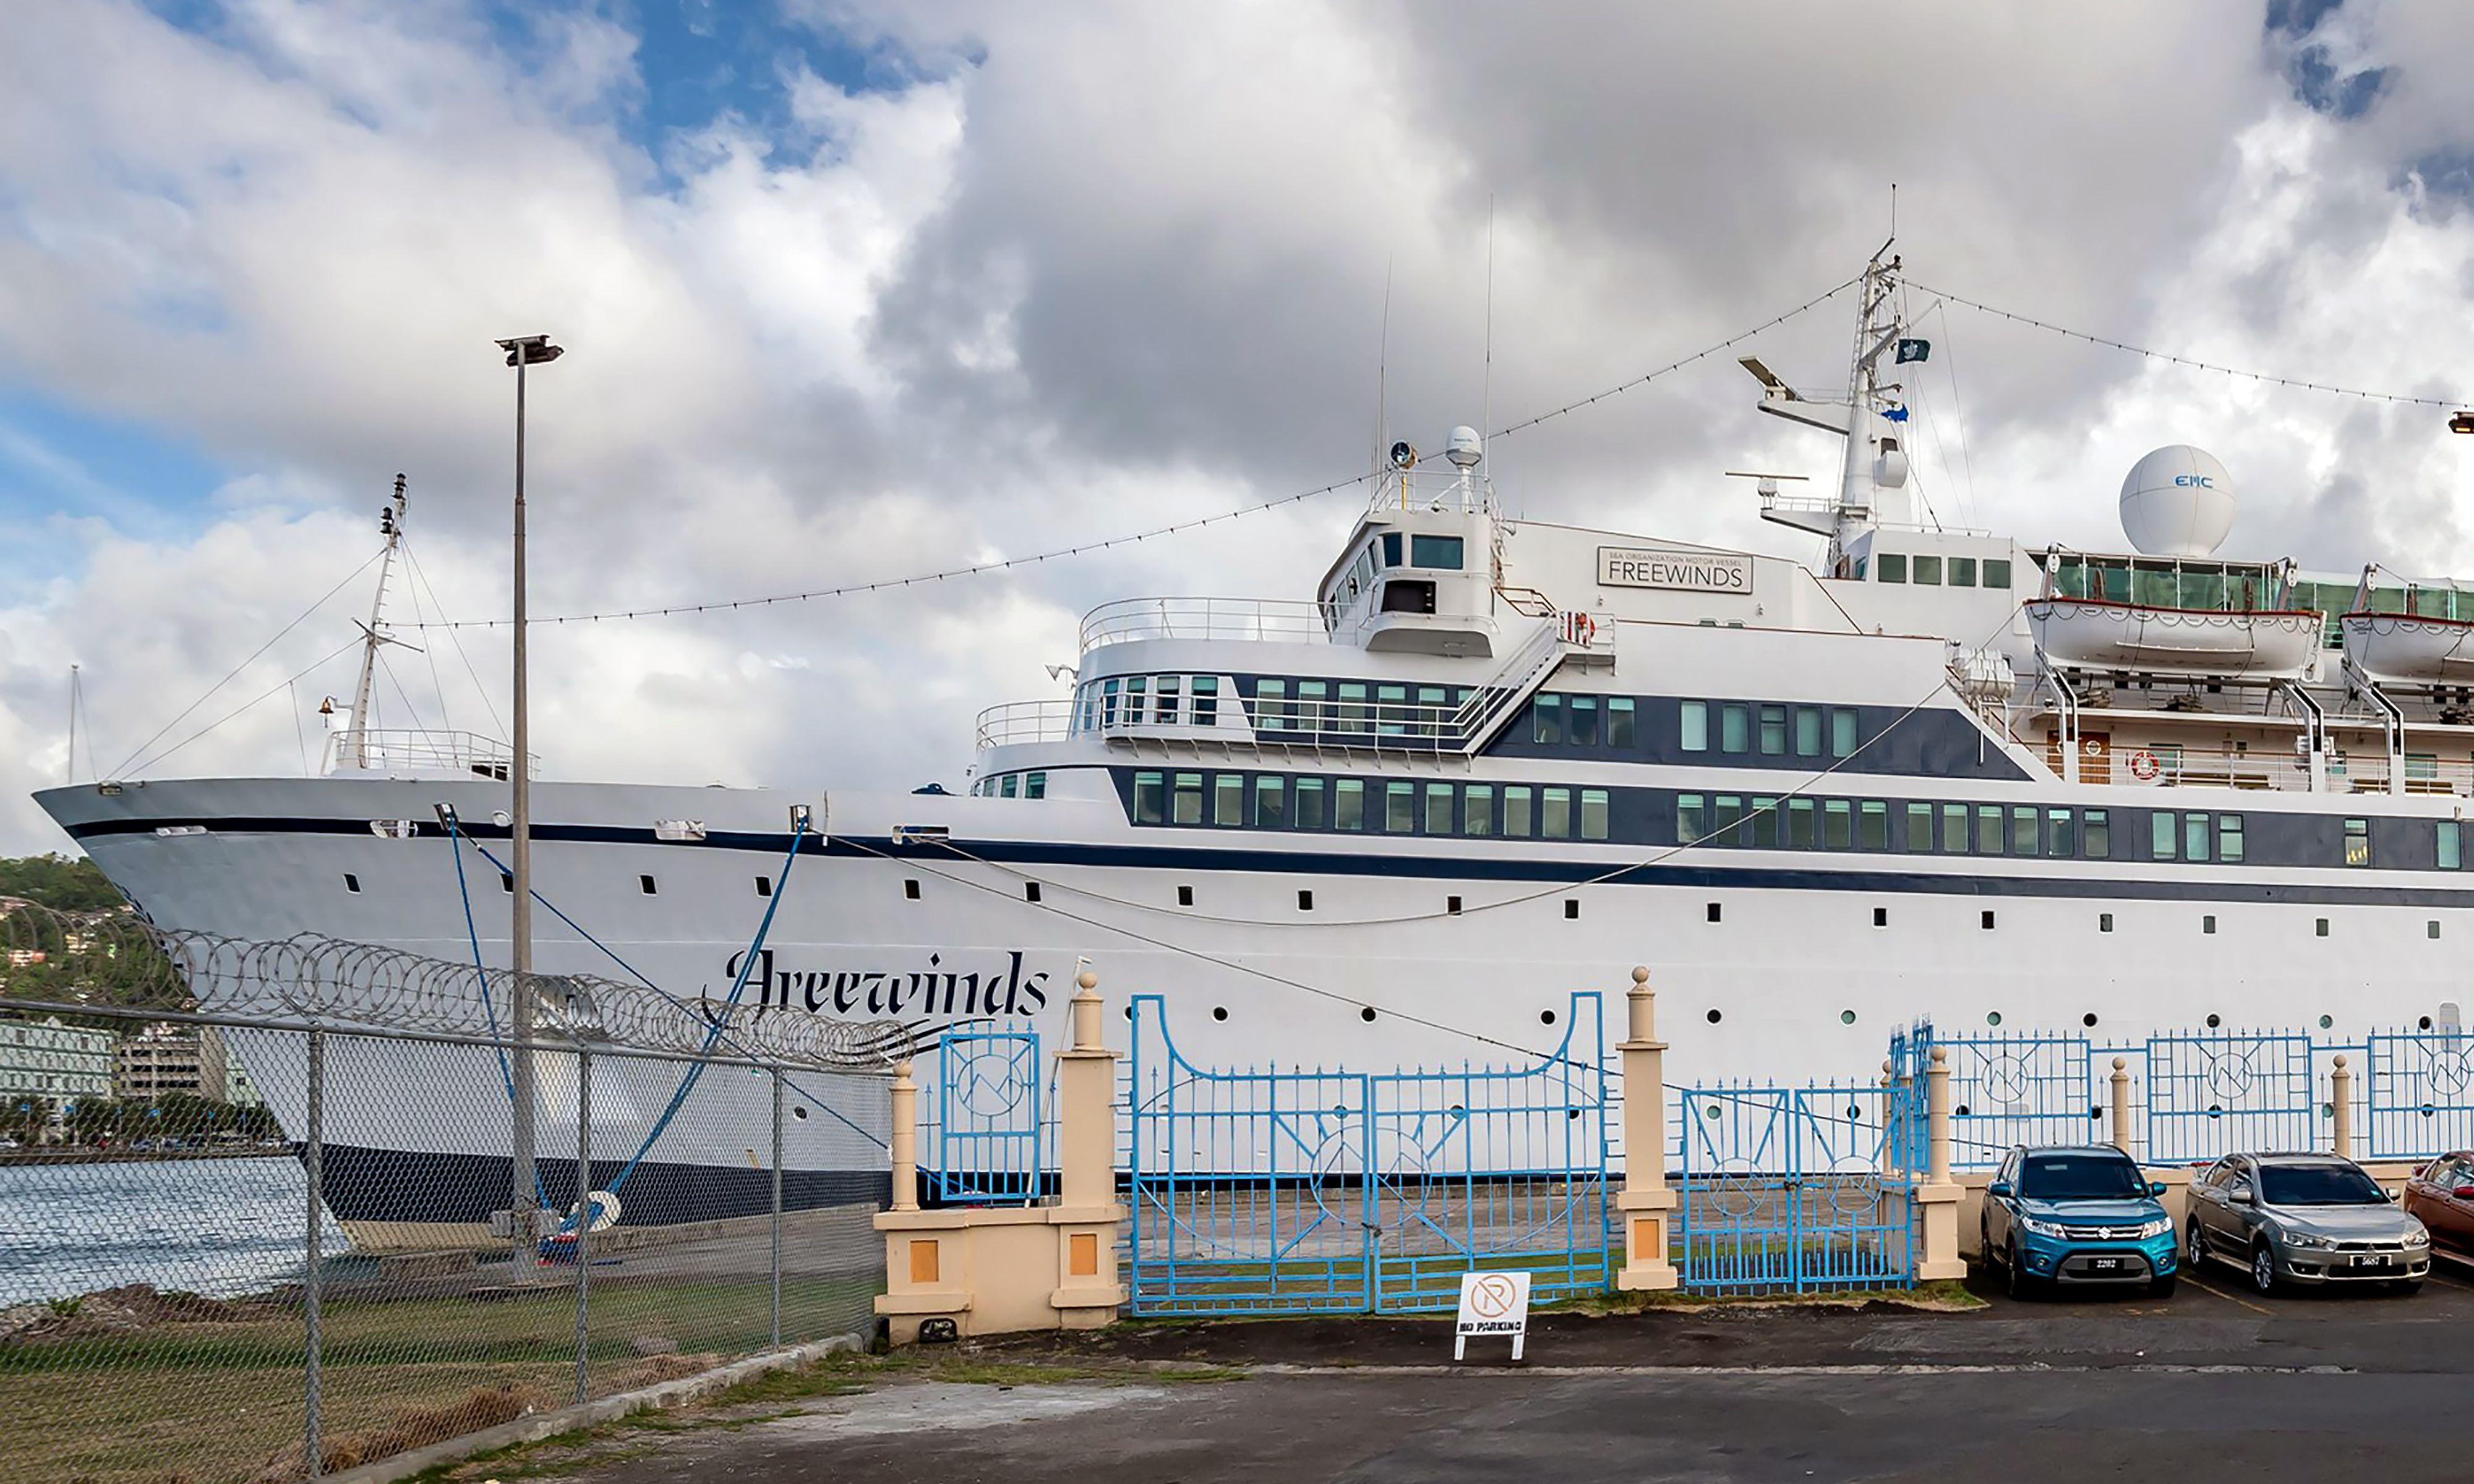 Scientology ship remains under measles quarantine in Caribbean scare